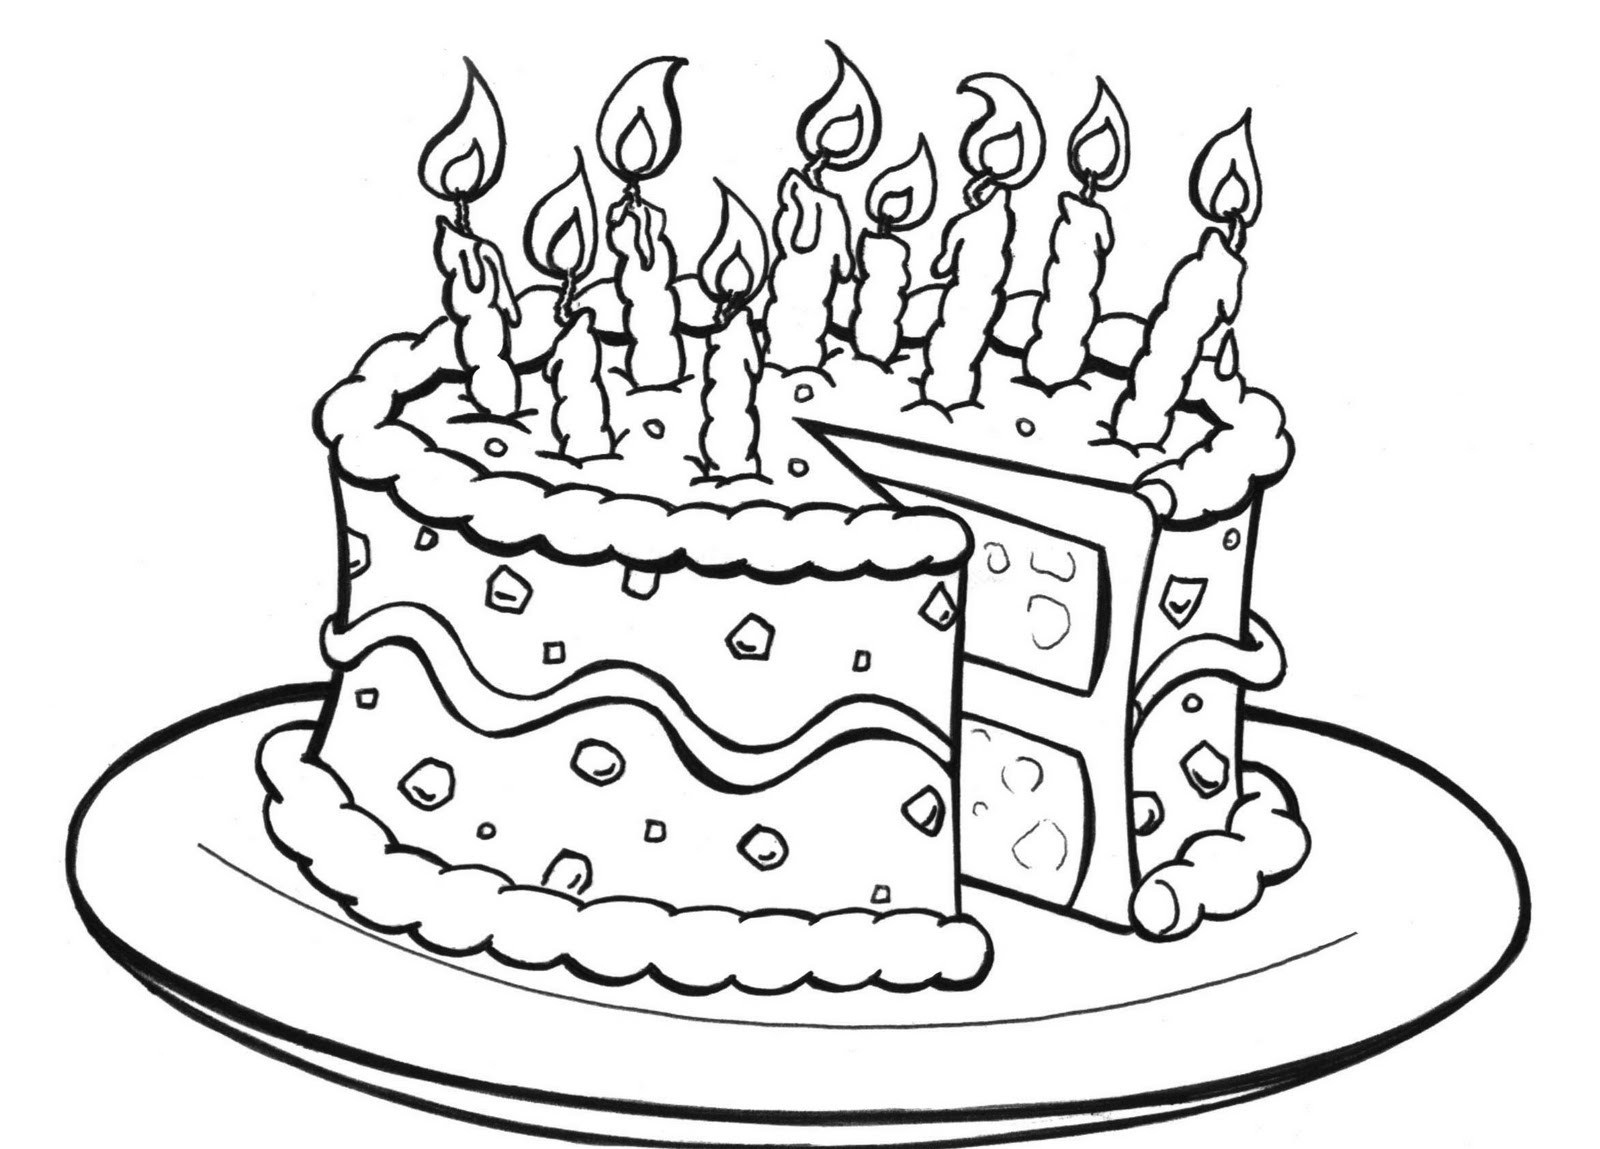 birthday cake coloring ; Birthday-cake-coloring-pages-on-plate